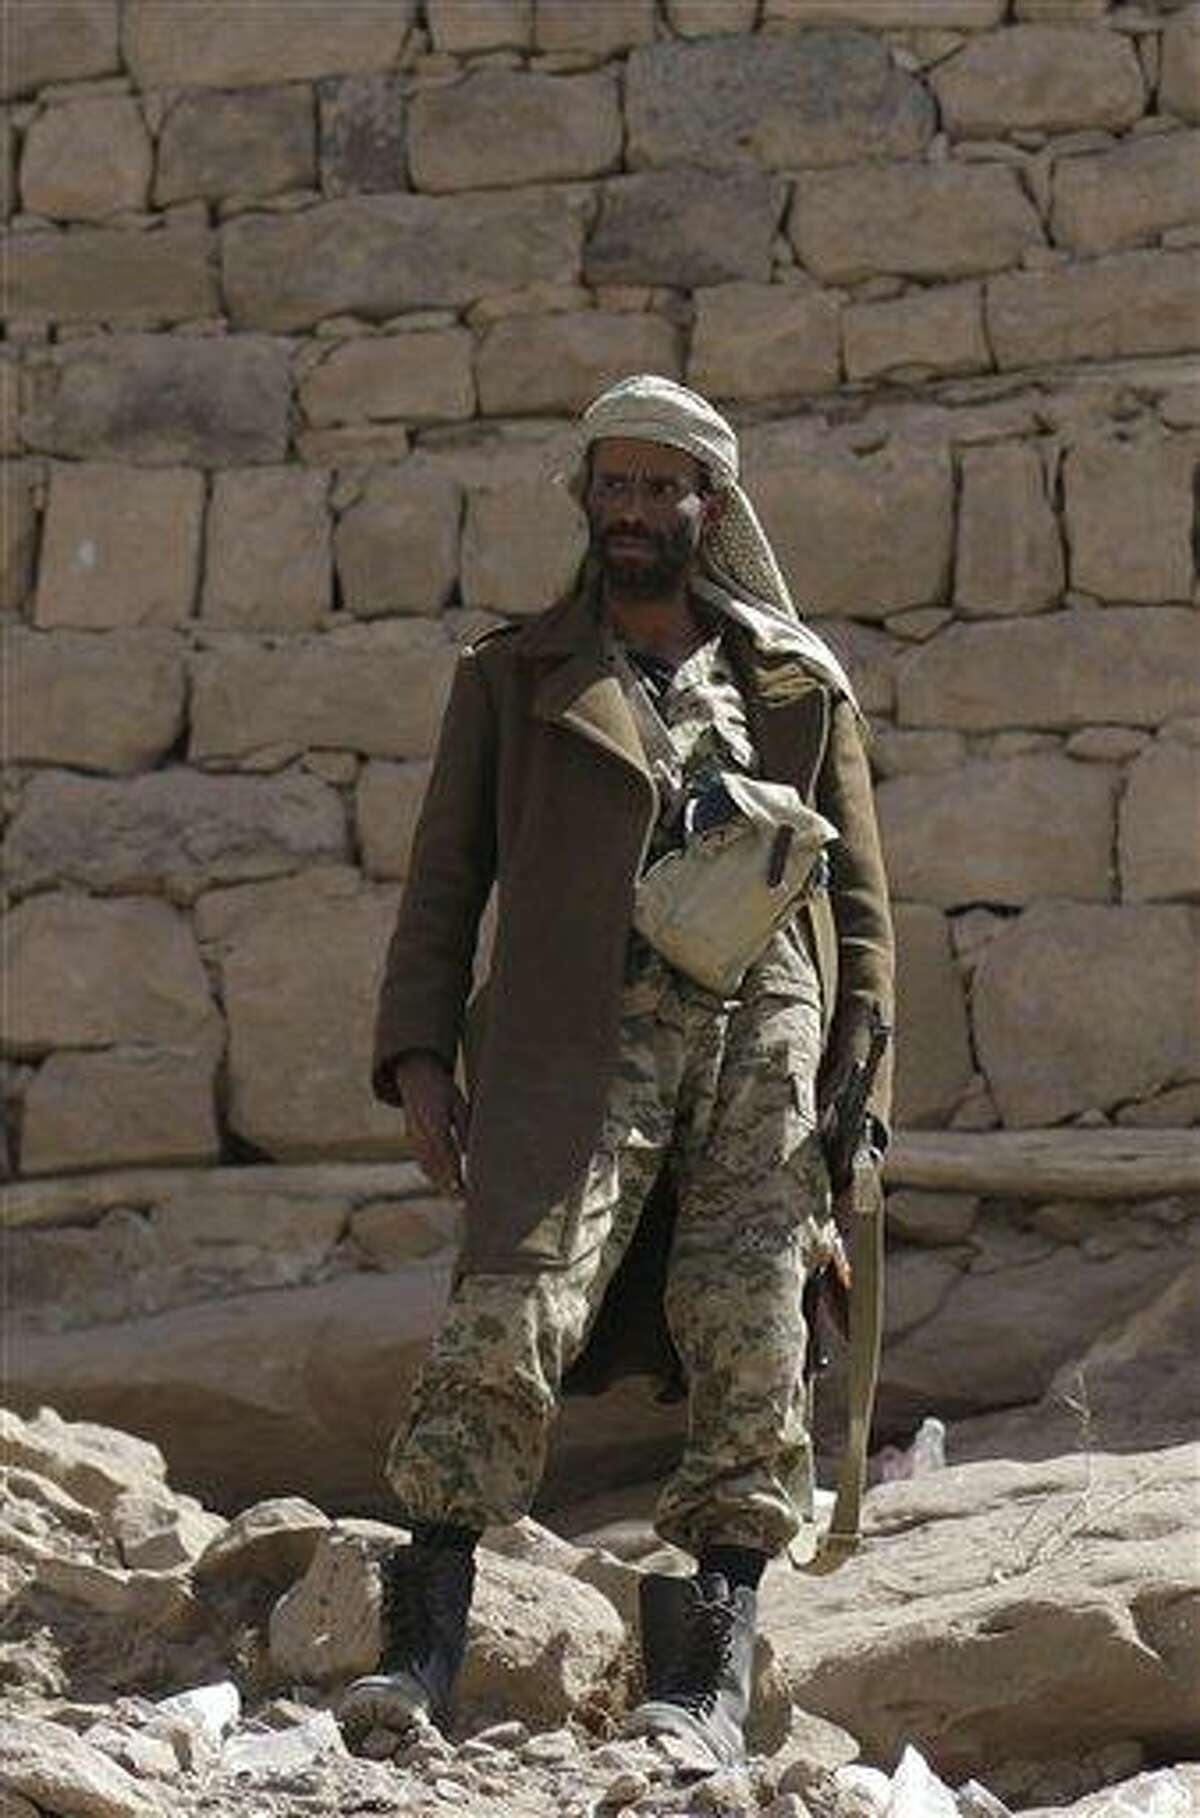 A soldier stands guard outside of Radda Castle, which was recently seized by al-Qaida militants in the town of Radda, 100 miles (160 kilometers) south of the capital, Sanaa, Yemen. A tribal leader involved in negotiating with the militants said al-Qaida militants had withdrawn from Radda, leaving the town in the control of two prominent sheiks. Associated Press